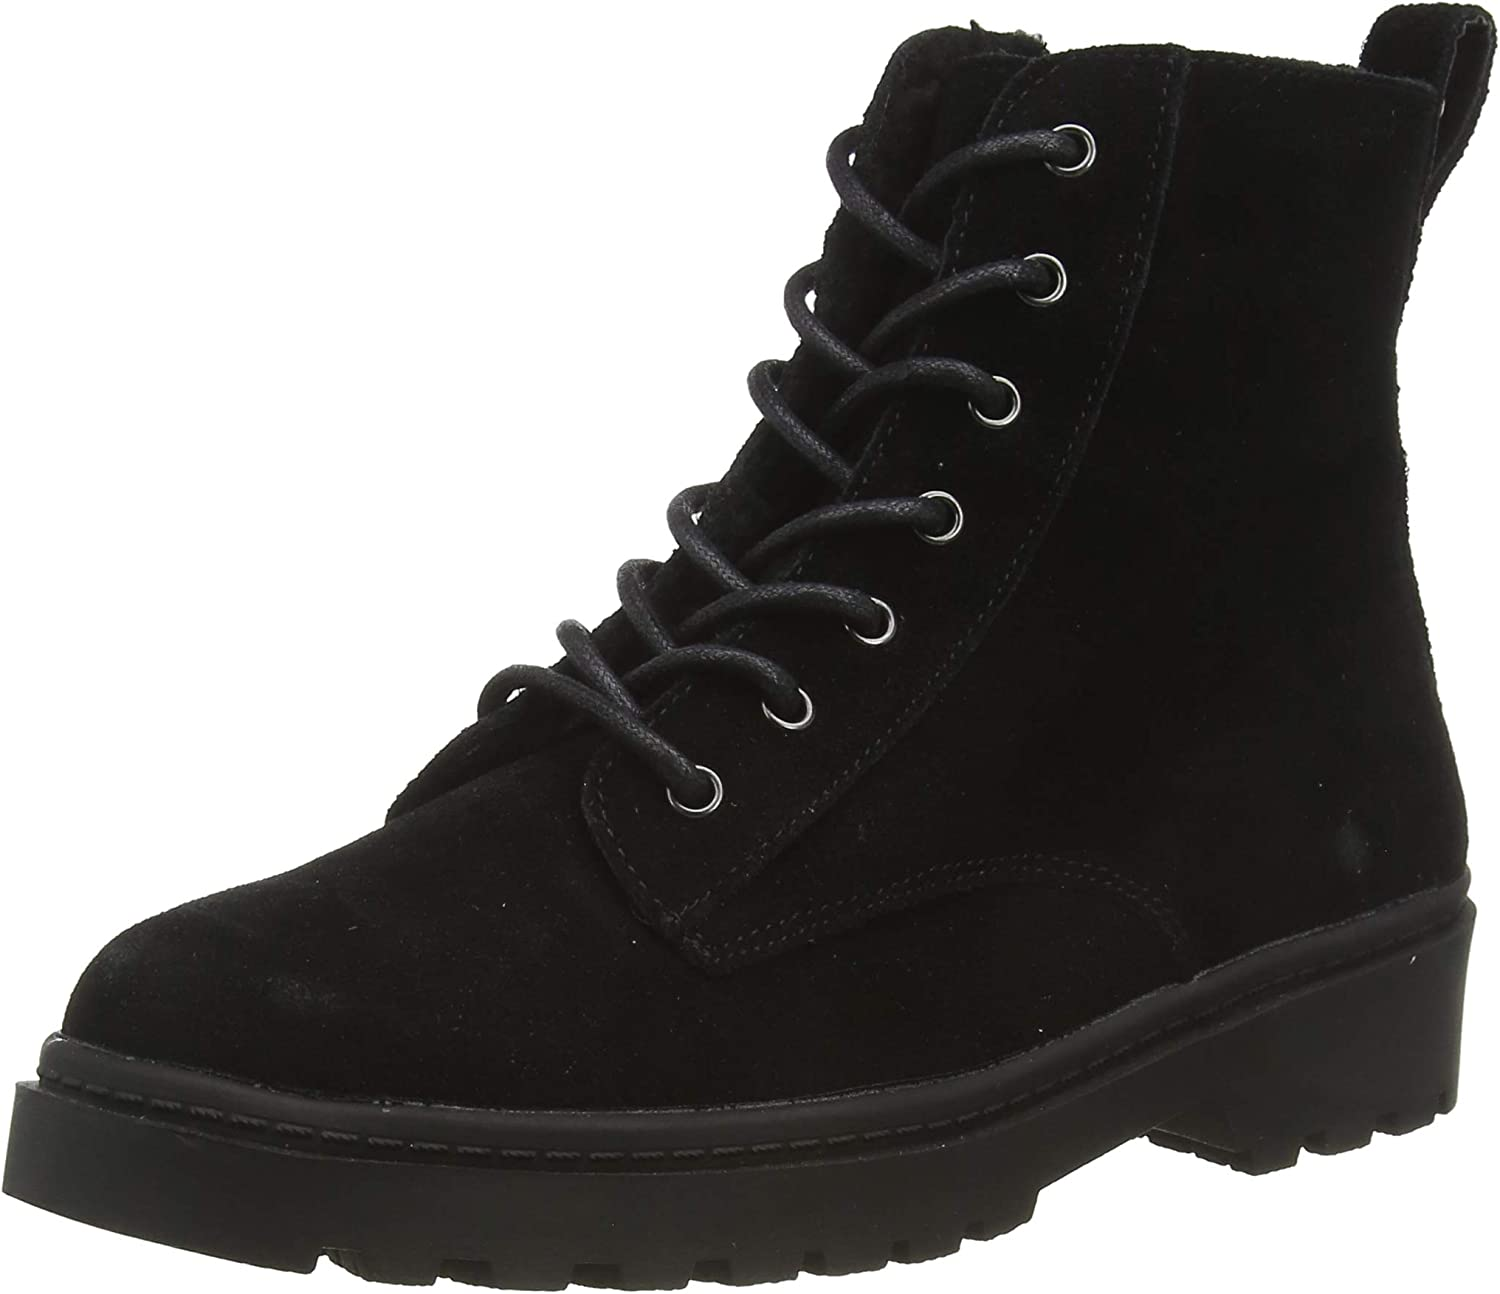 Ola Leather Lace Up Hiker Boots Ankle